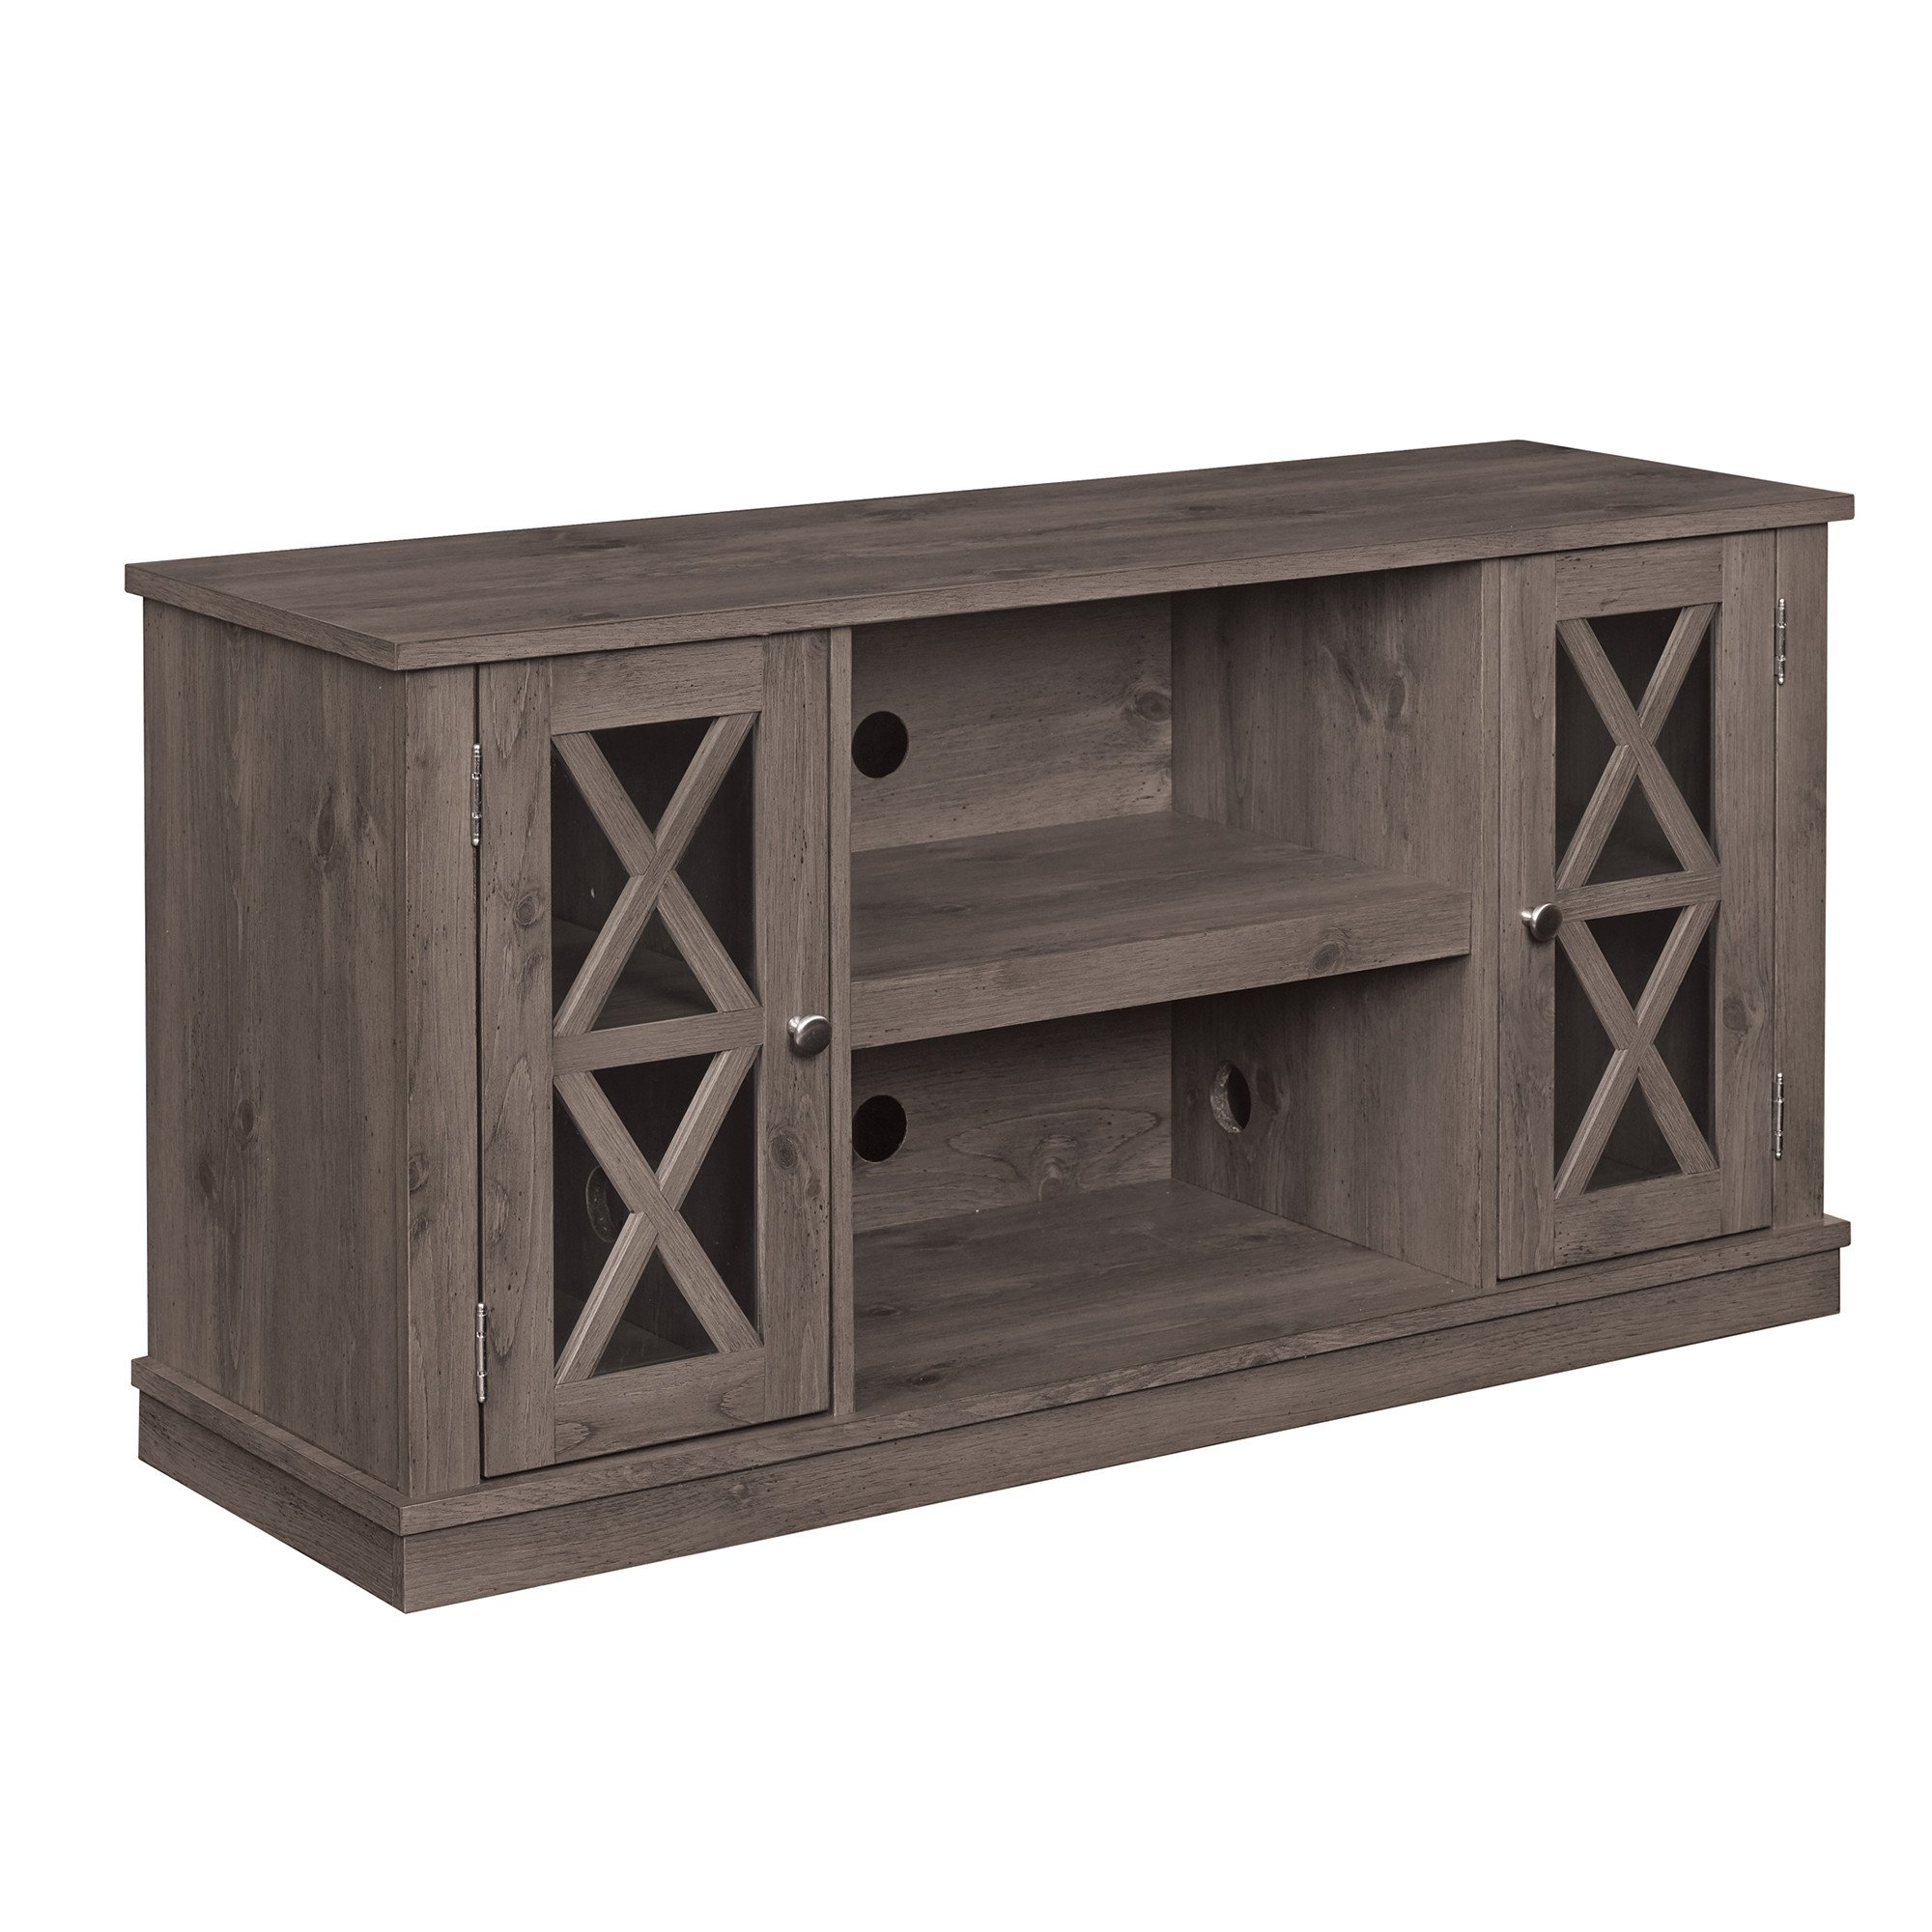 Get Quotations Spanish Gray Finish Azusa Wooden Tv Stand Accommodates 55 Inches Size With 2 Cabinets And